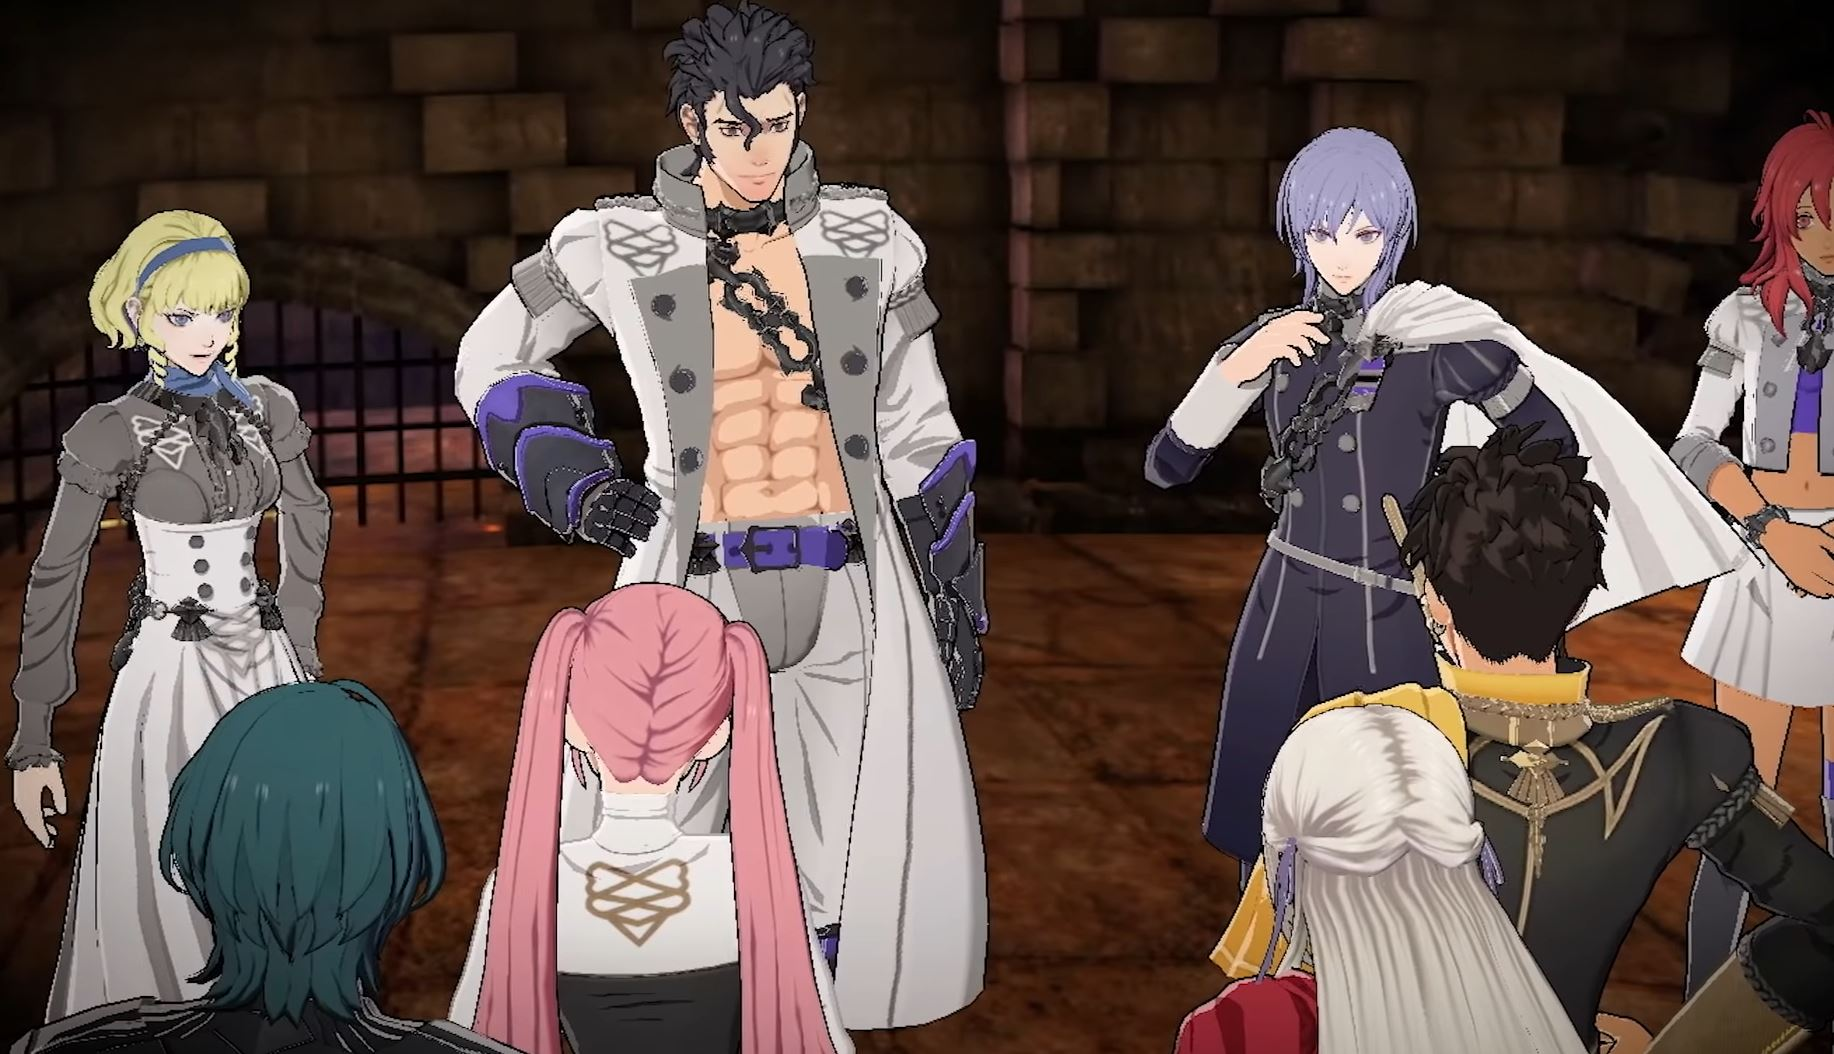 Fire Emblem: Three Houses 'Cindered Shadows' DLC dated and detailed